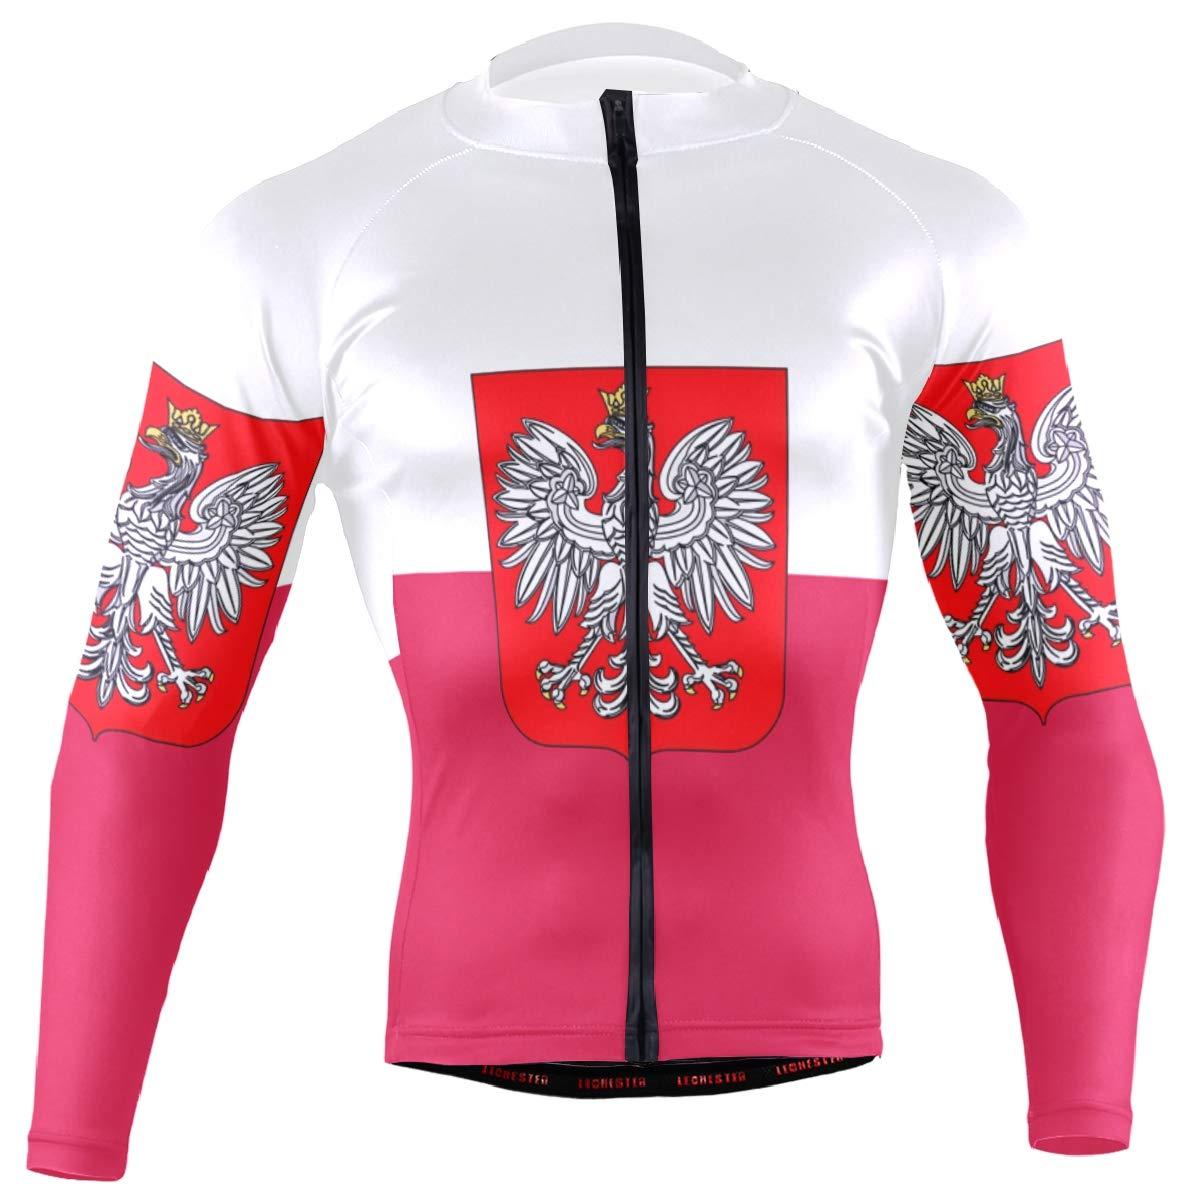 Men's Cycling Jersey Long Sleeve with 3 Rear Pockets Shirt Poland Flag National Emblem by CHINEIN